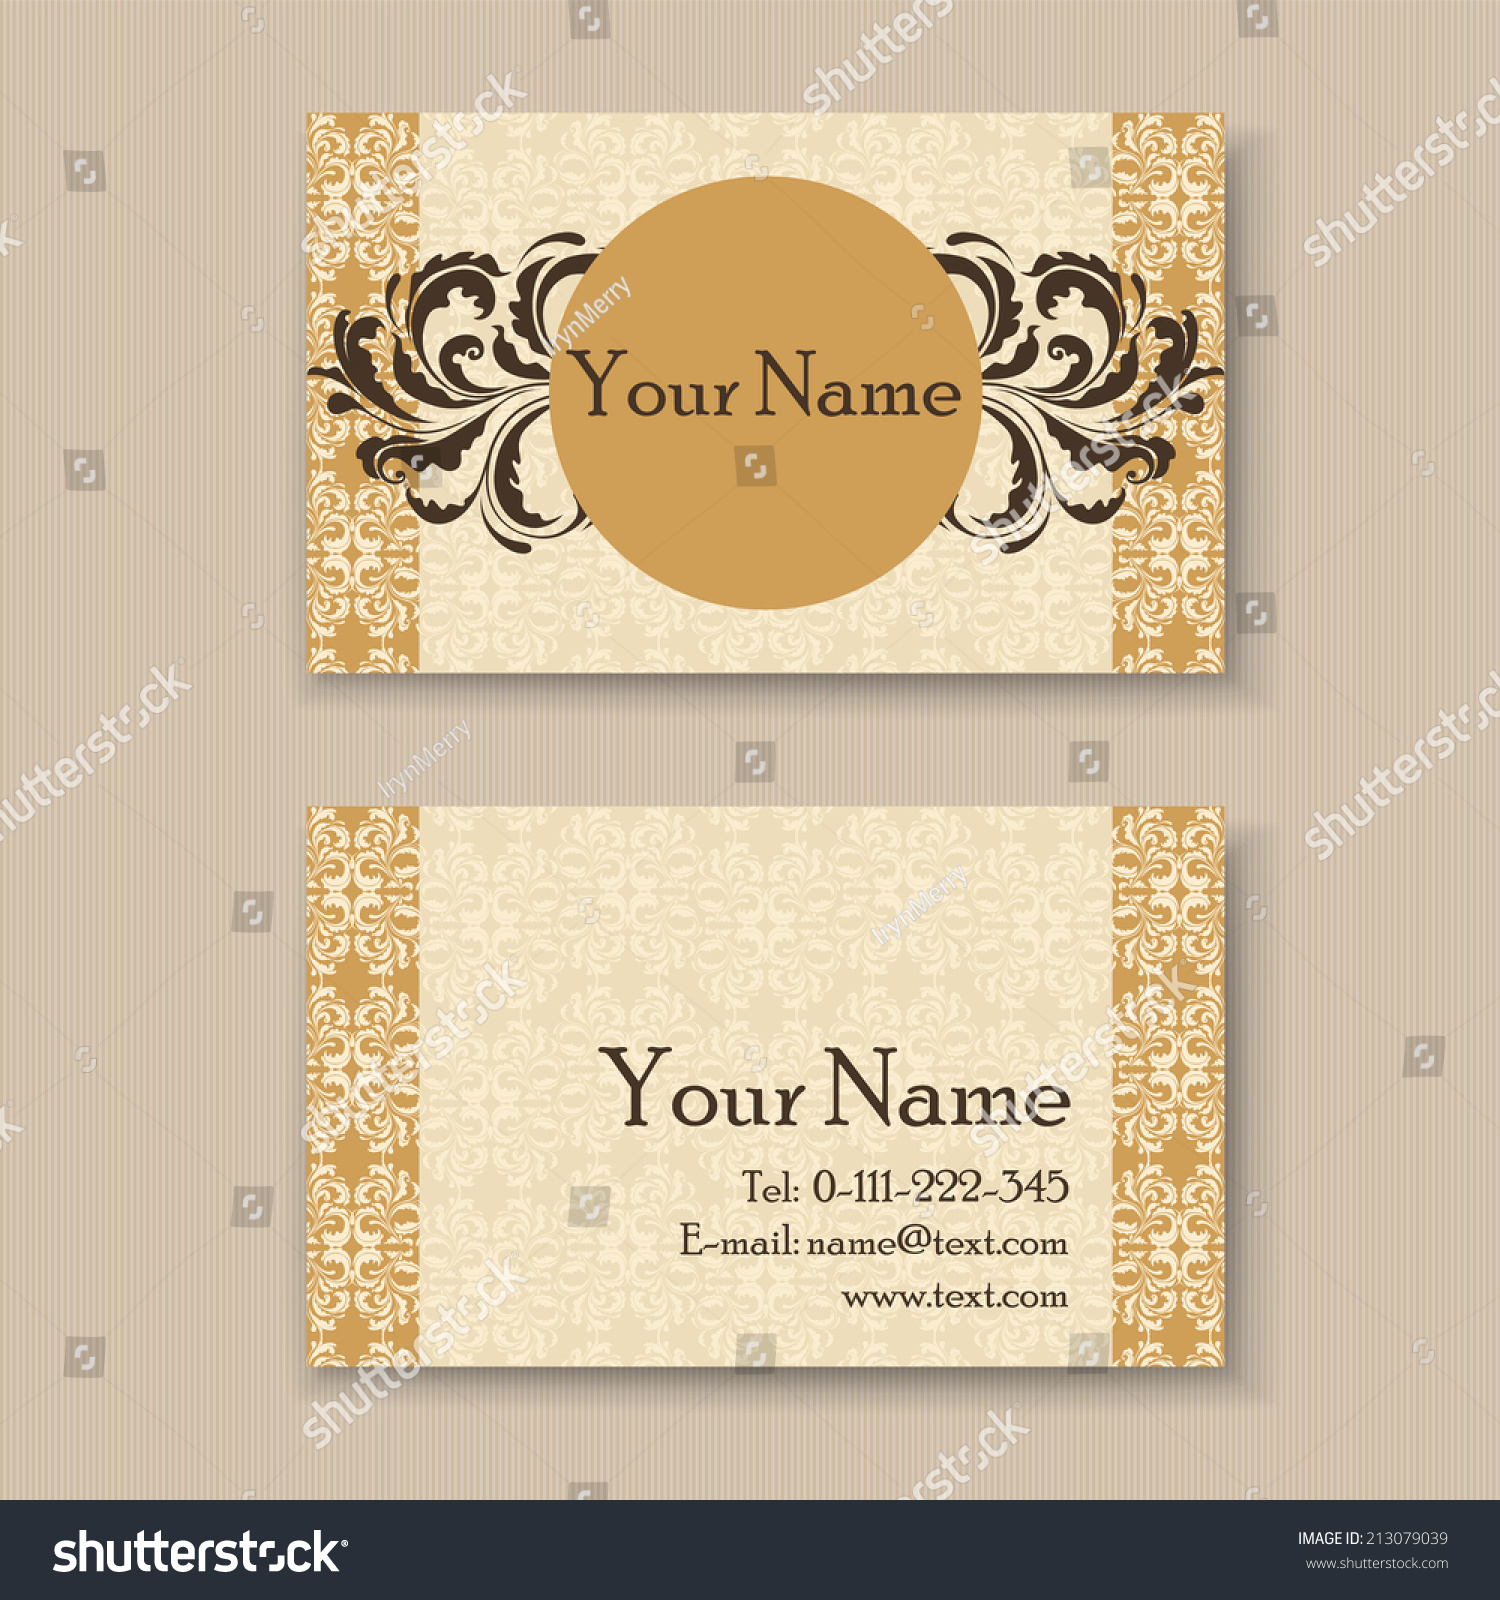 Stylish vintage business card template stock vector 213079039 stylish vintage business card template flashek Choice Image